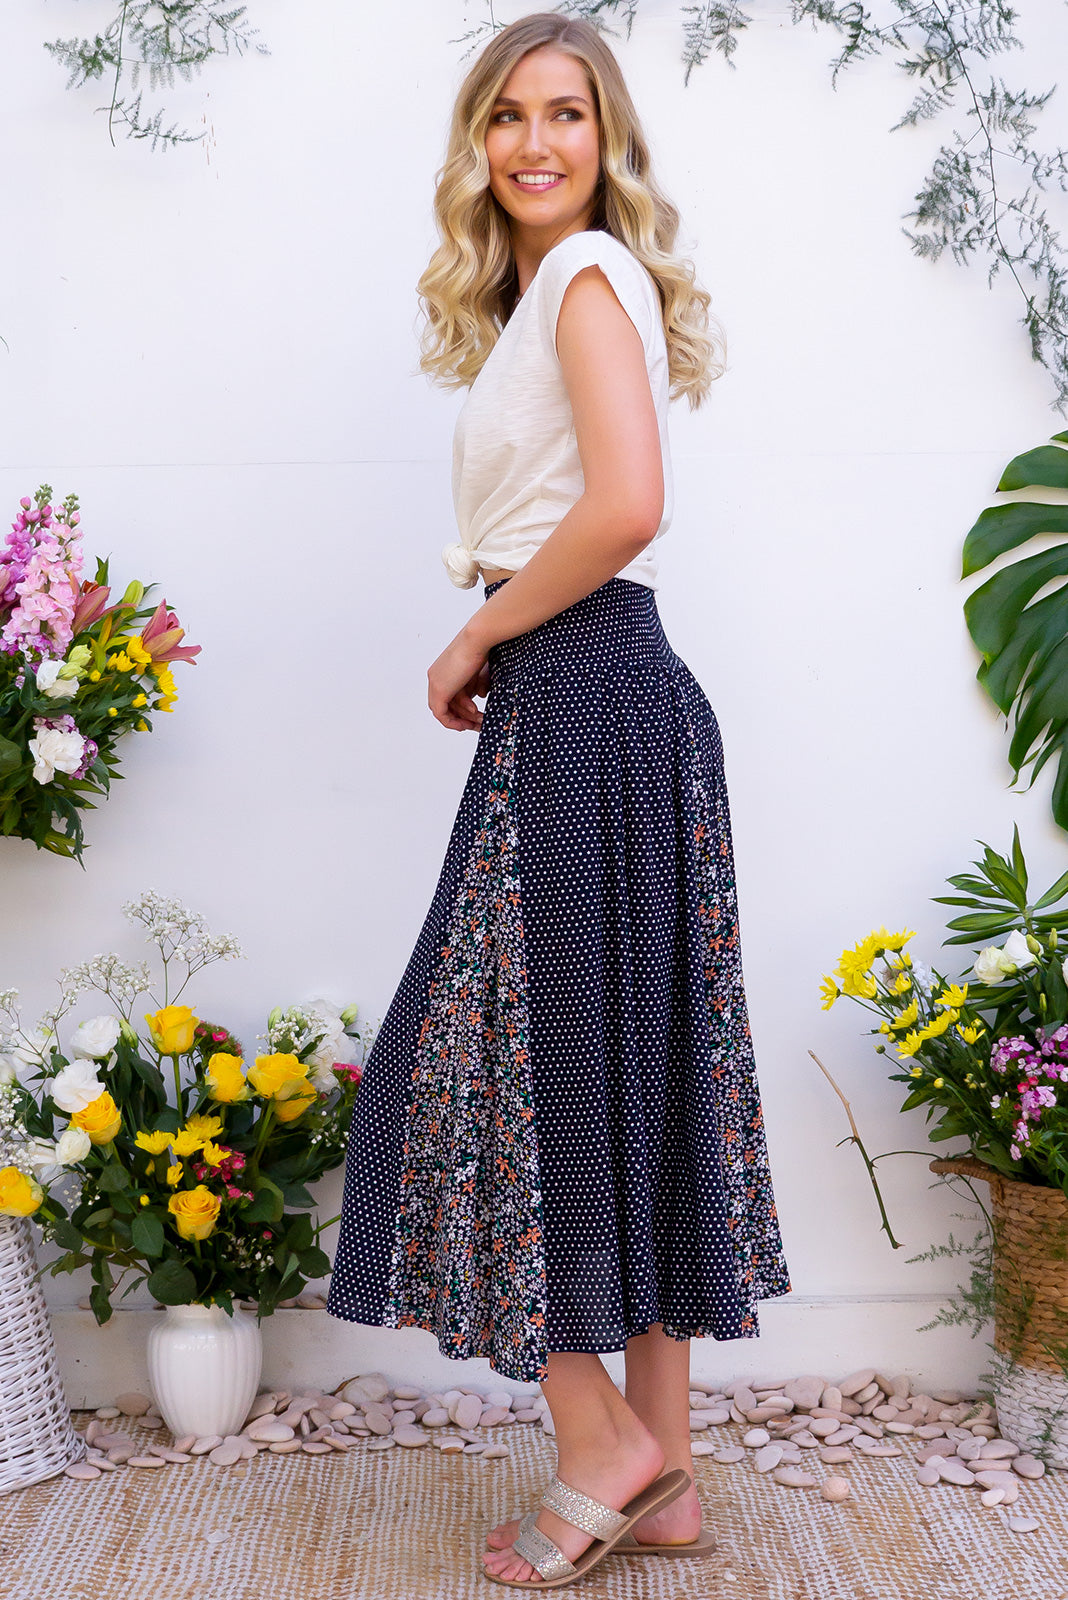 Etosha Spots and Stars Skirt - Features fishtail inserts creating a full circle skirt effect. Made from a soft navy rayon. Includes pockets and a shirred elastic waist.